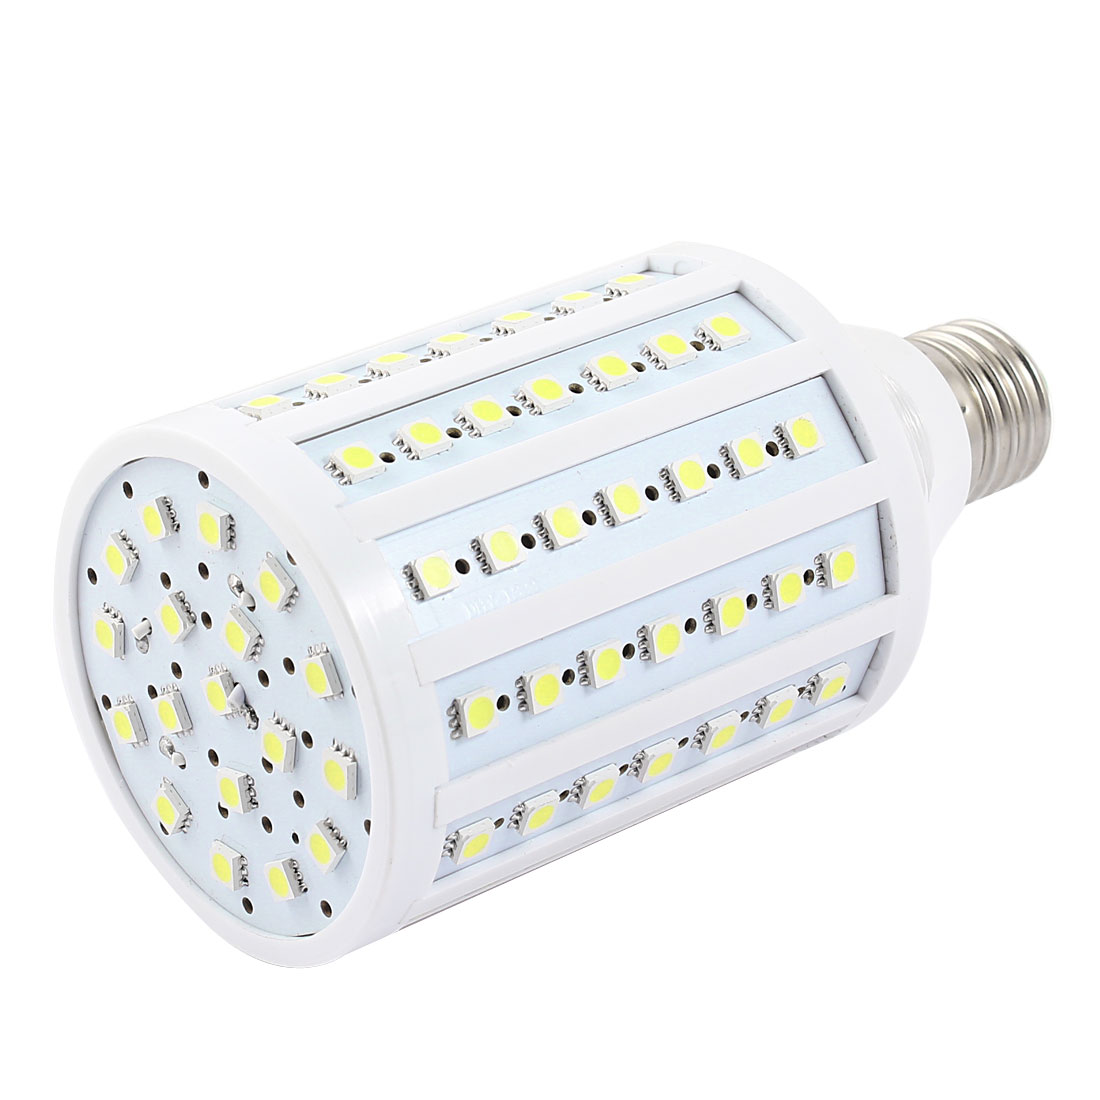 6000-6500K 20W Watt E27 Screw Base Pure White 102 SMD 5050 LED Light Bulb Lamp